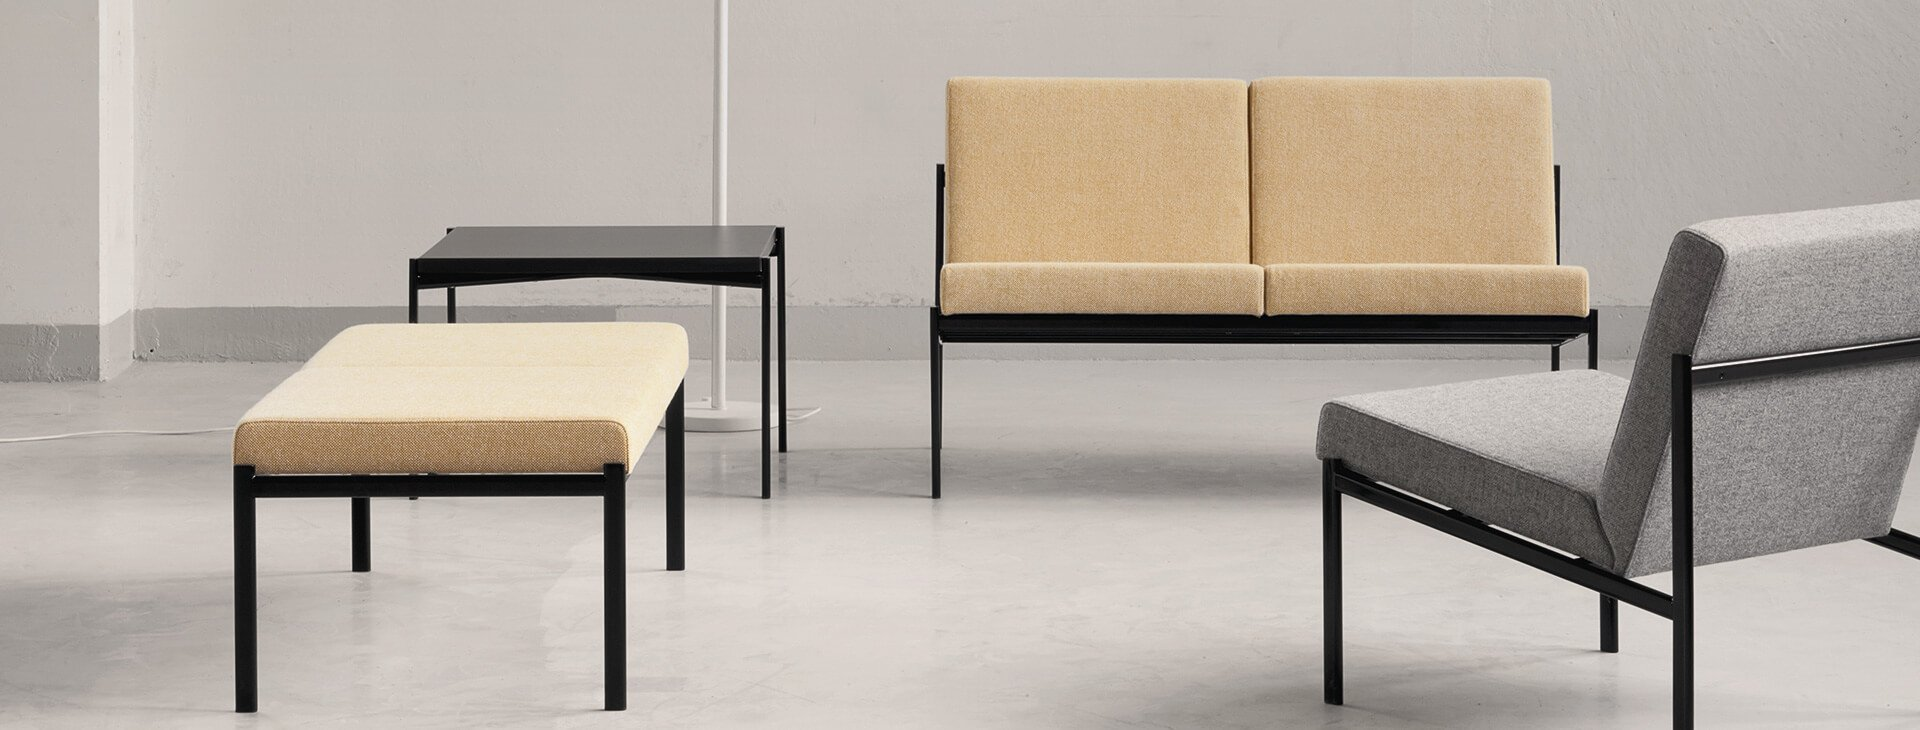 artek ihre brands im stilwerk berlin. Black Bedroom Furniture Sets. Home Design Ideas